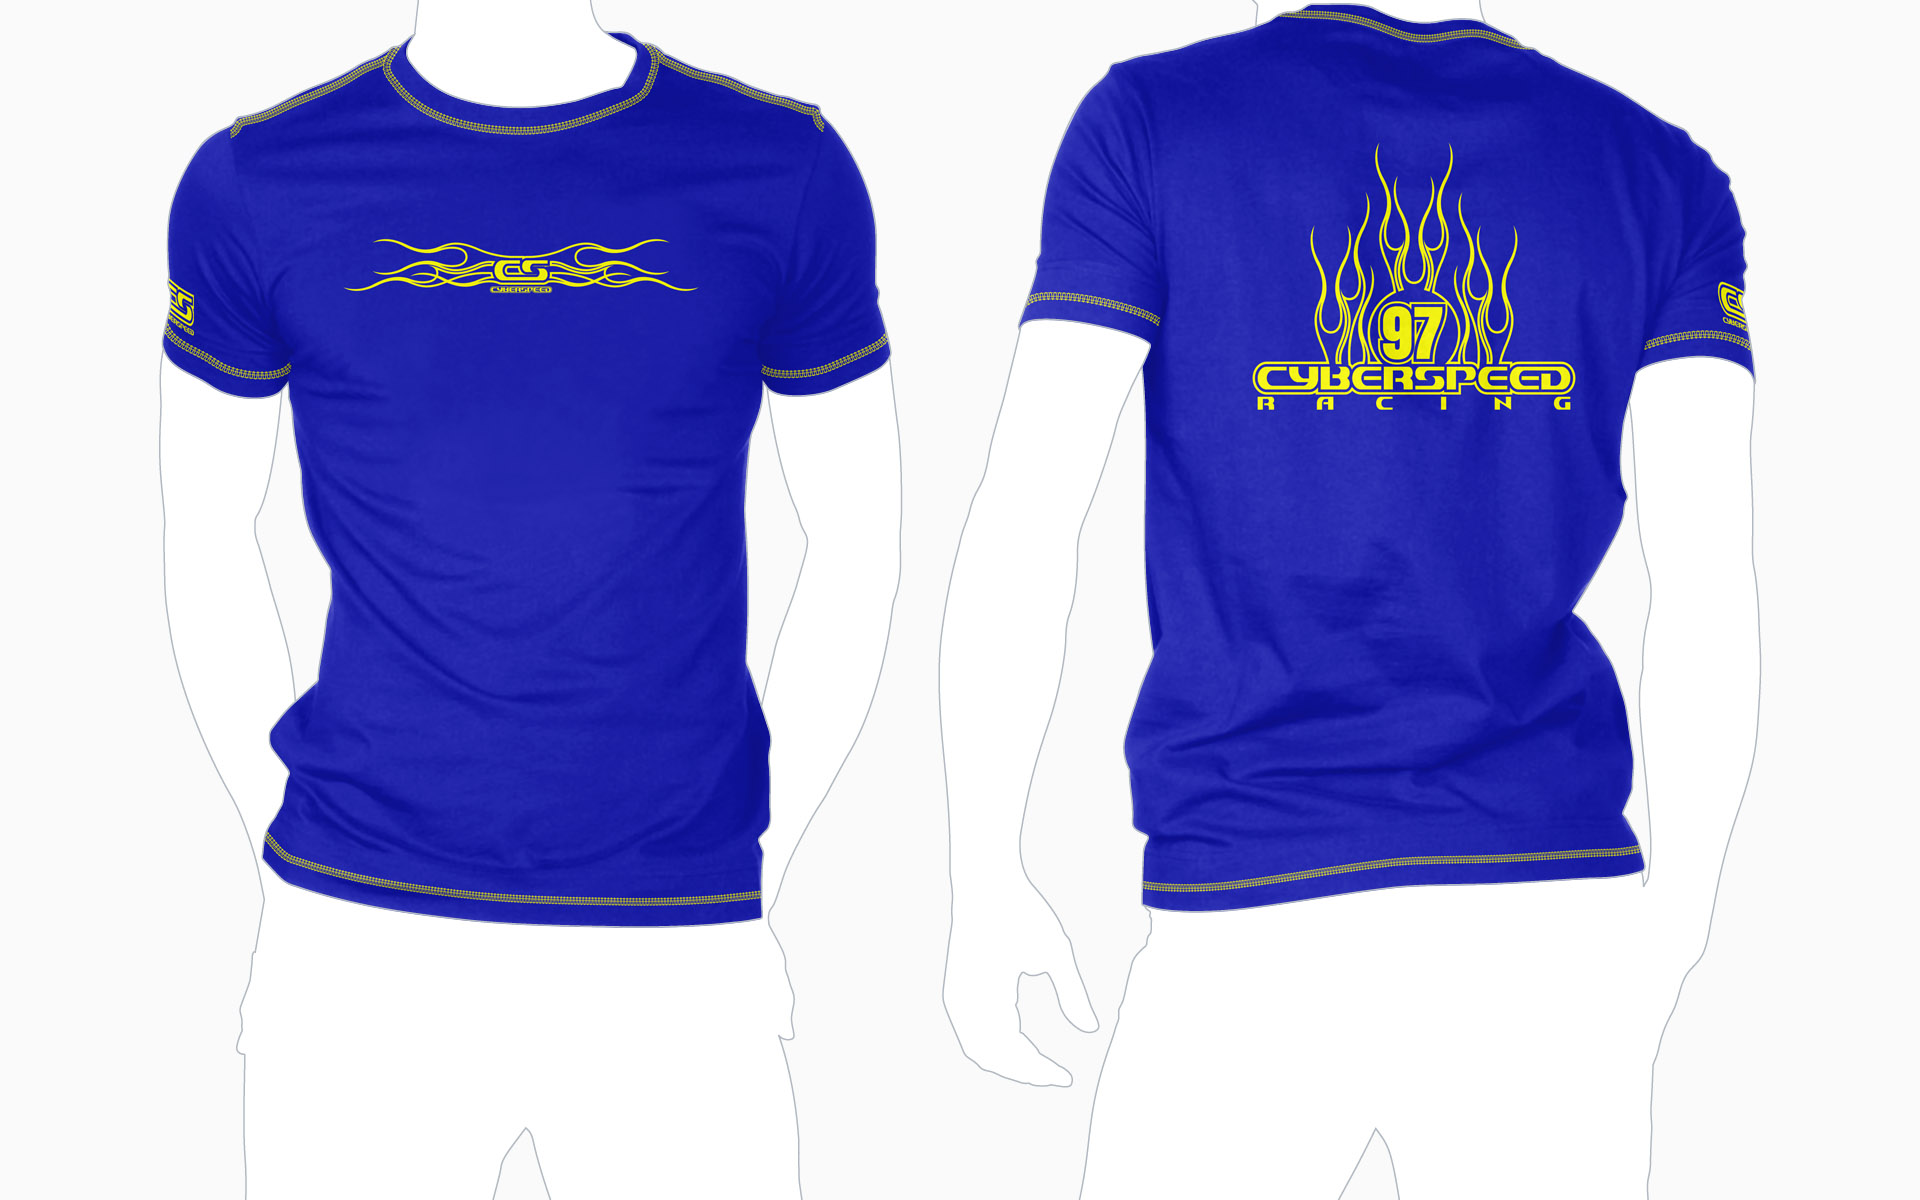 Cyberspeed Racing T-Shirt